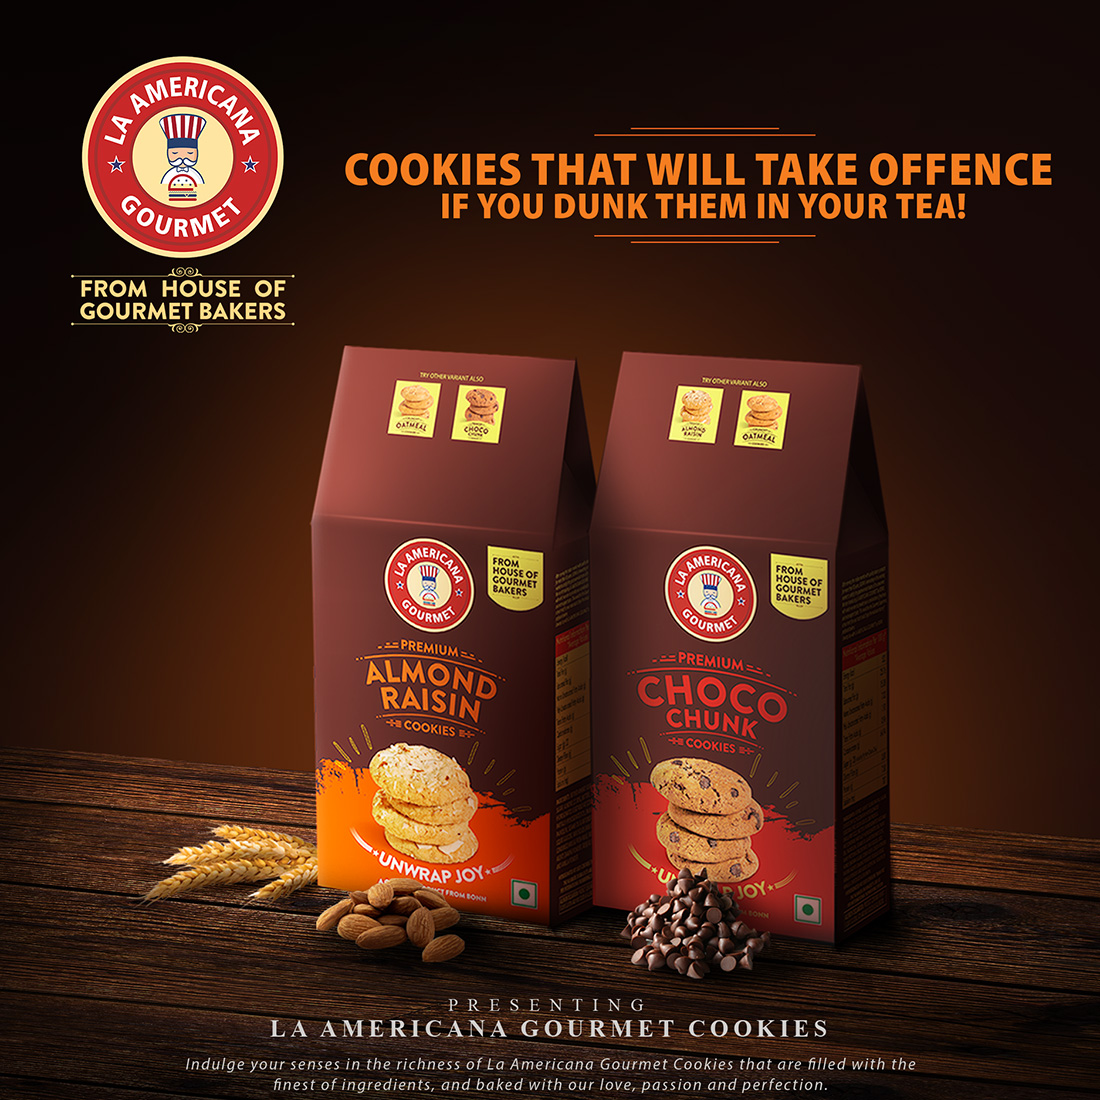 LA Americana Multi Pack Almond Raisin and Chocochunk Cookies, TWO pack each